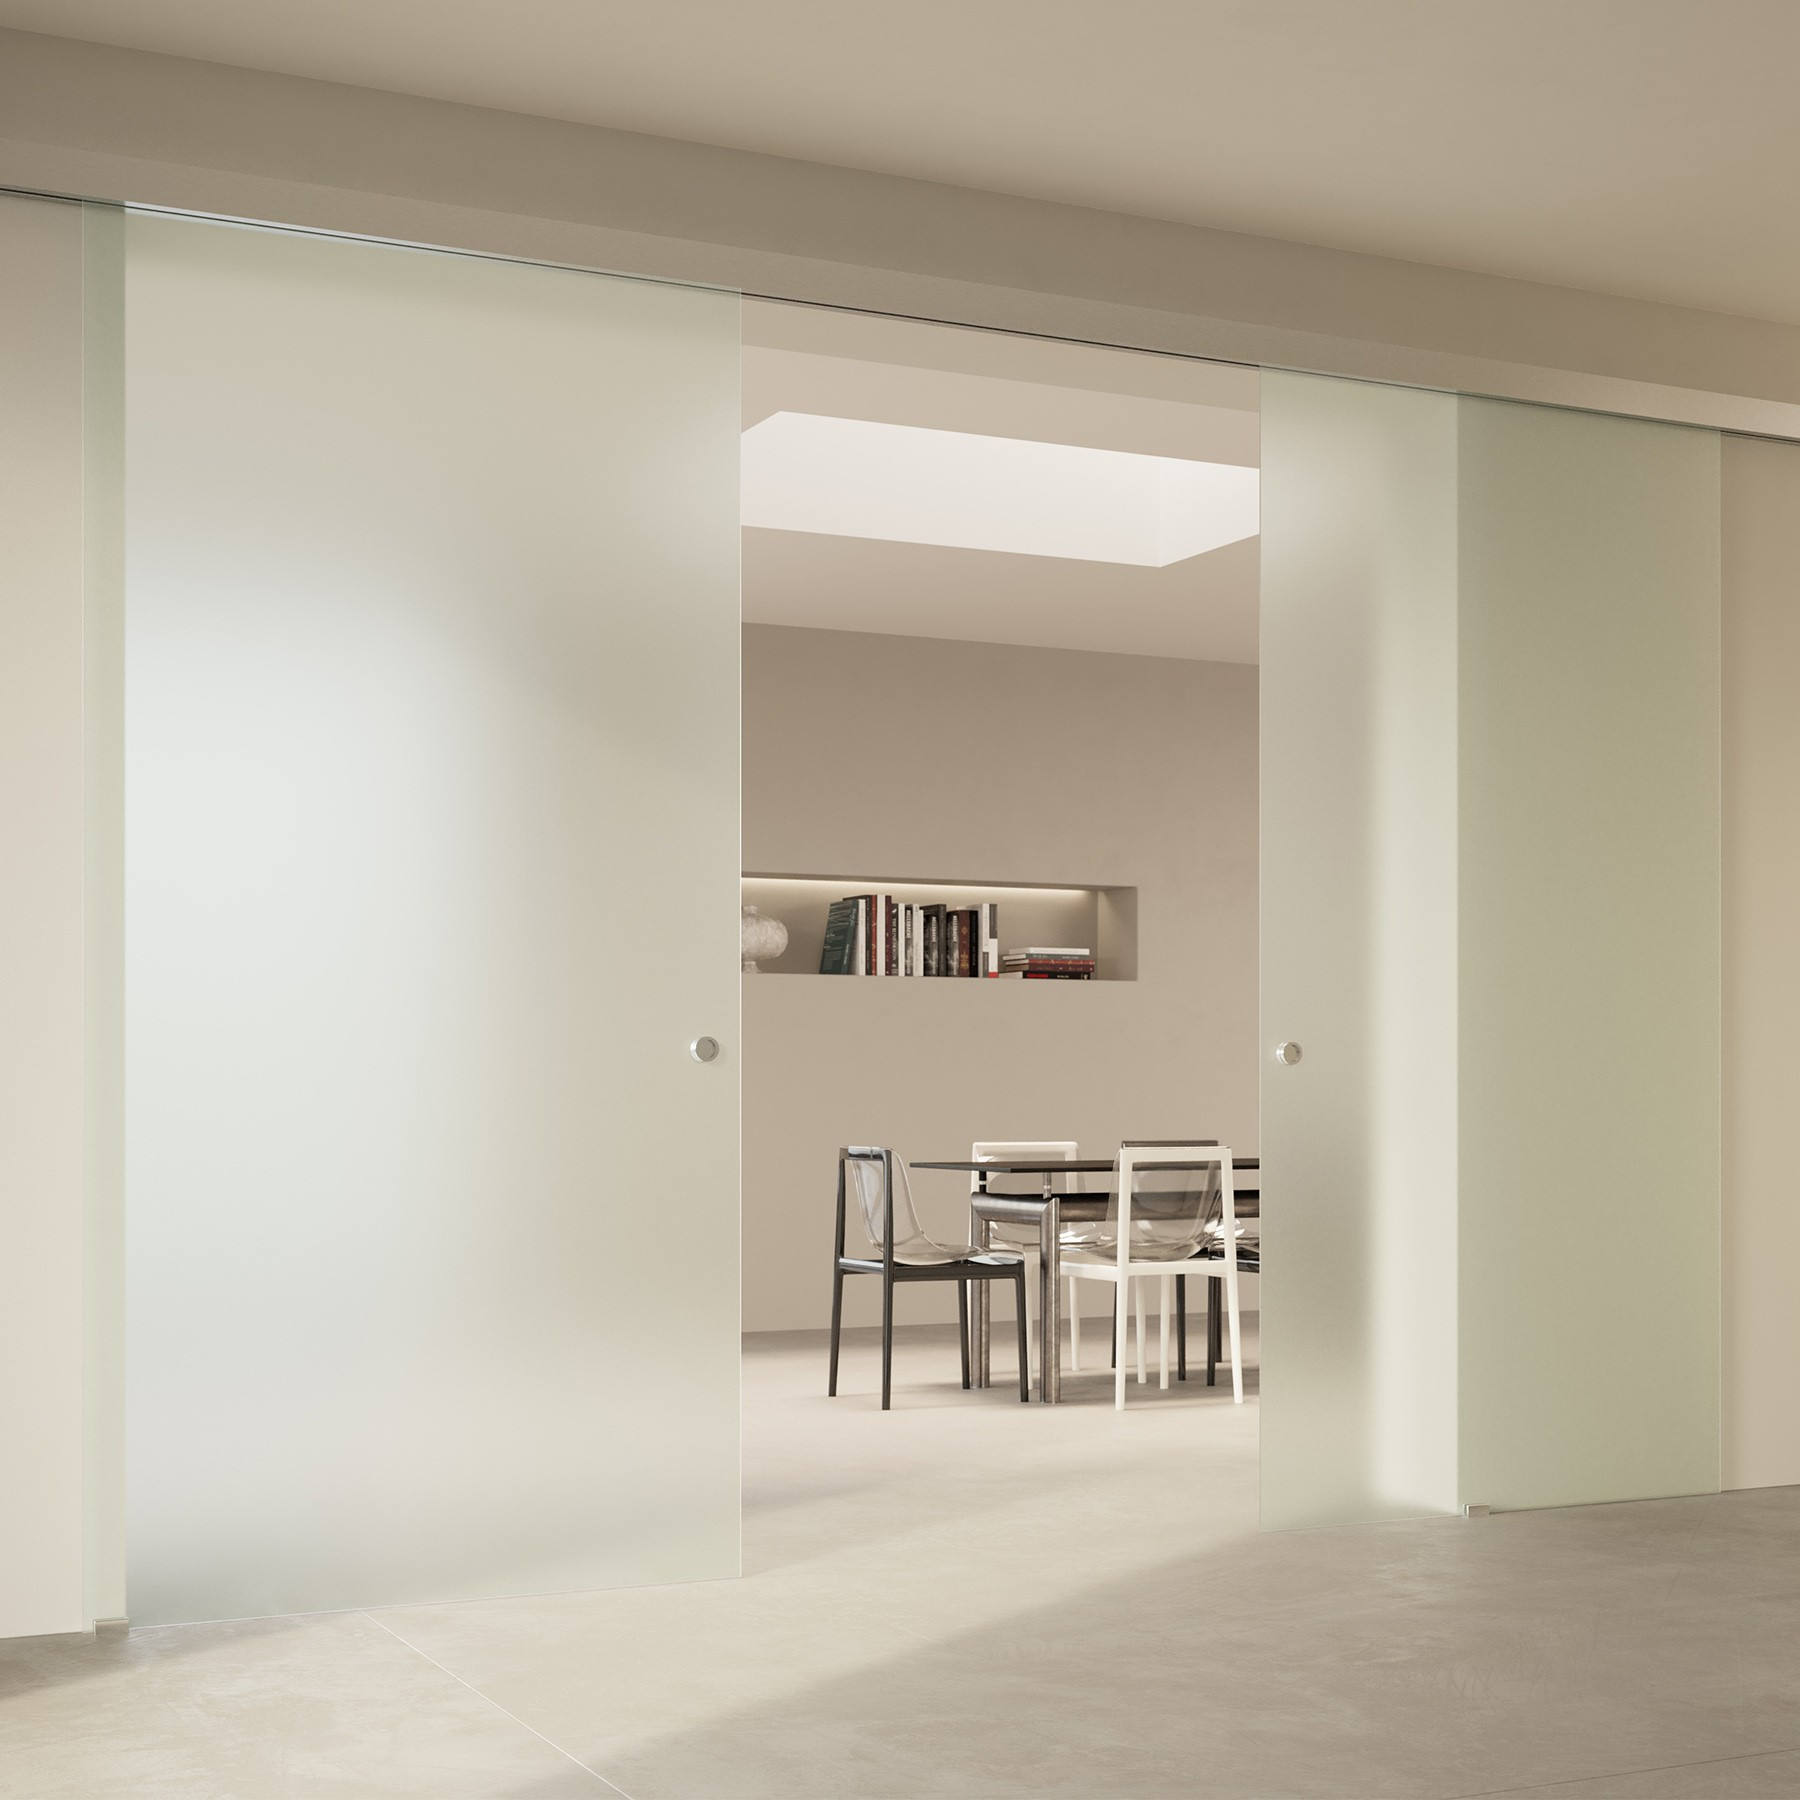 Scenario Visio with Frosted glass